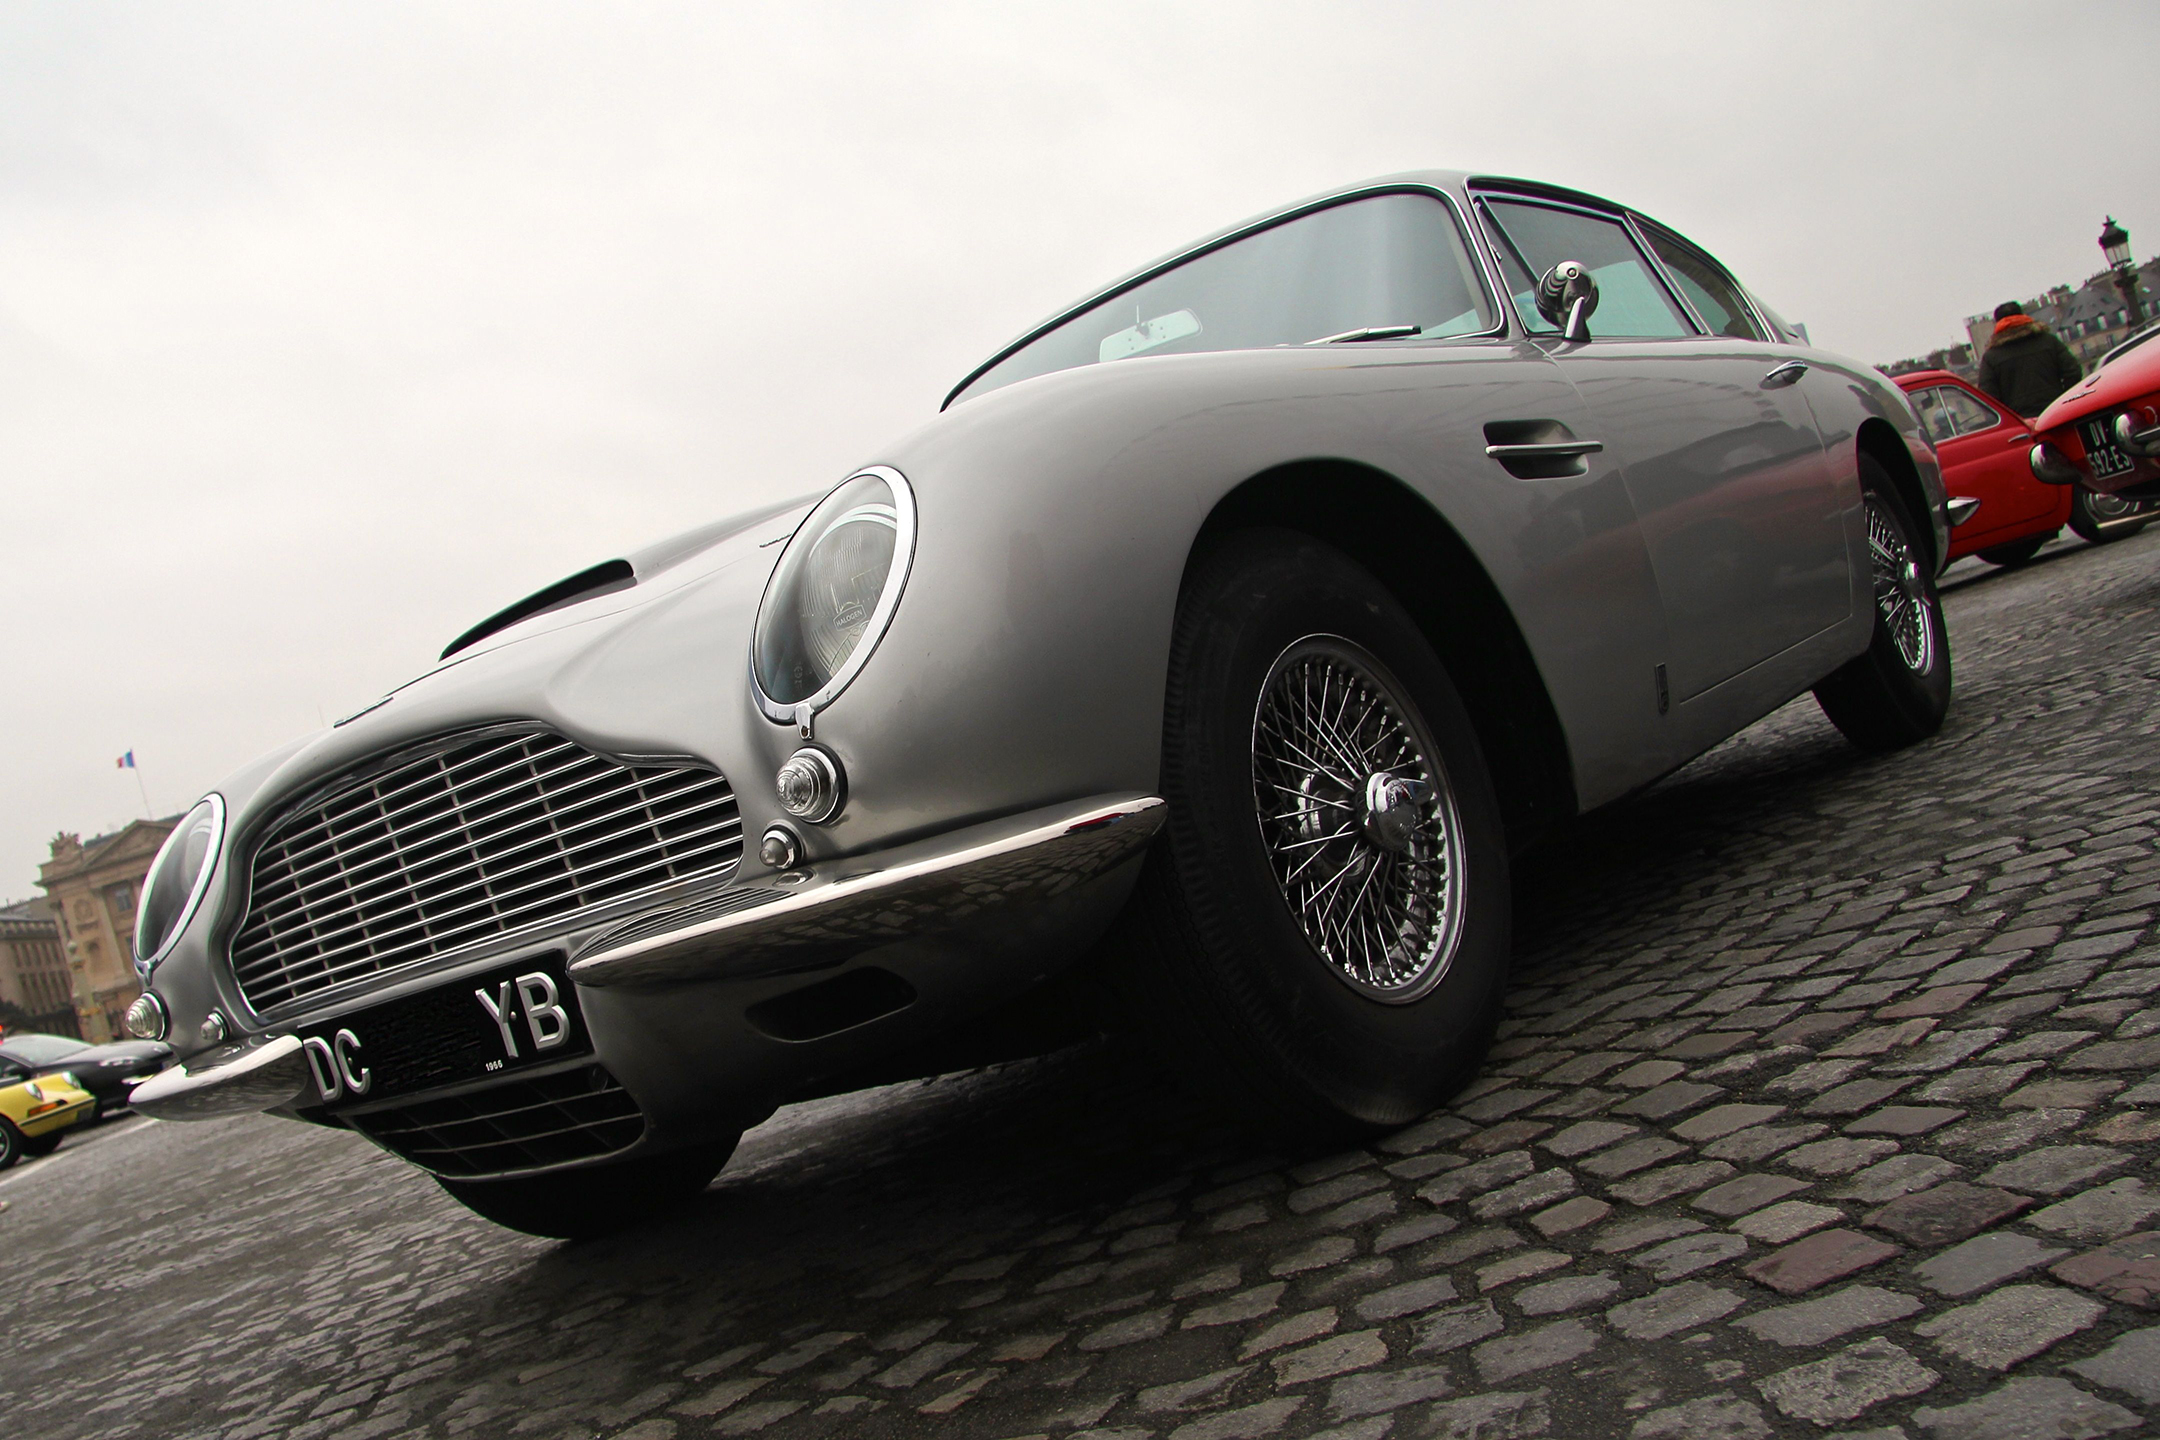 Aston Martin DB6 - Traversée de Paris Hivernale 2018 - photo Ludo Ferrari